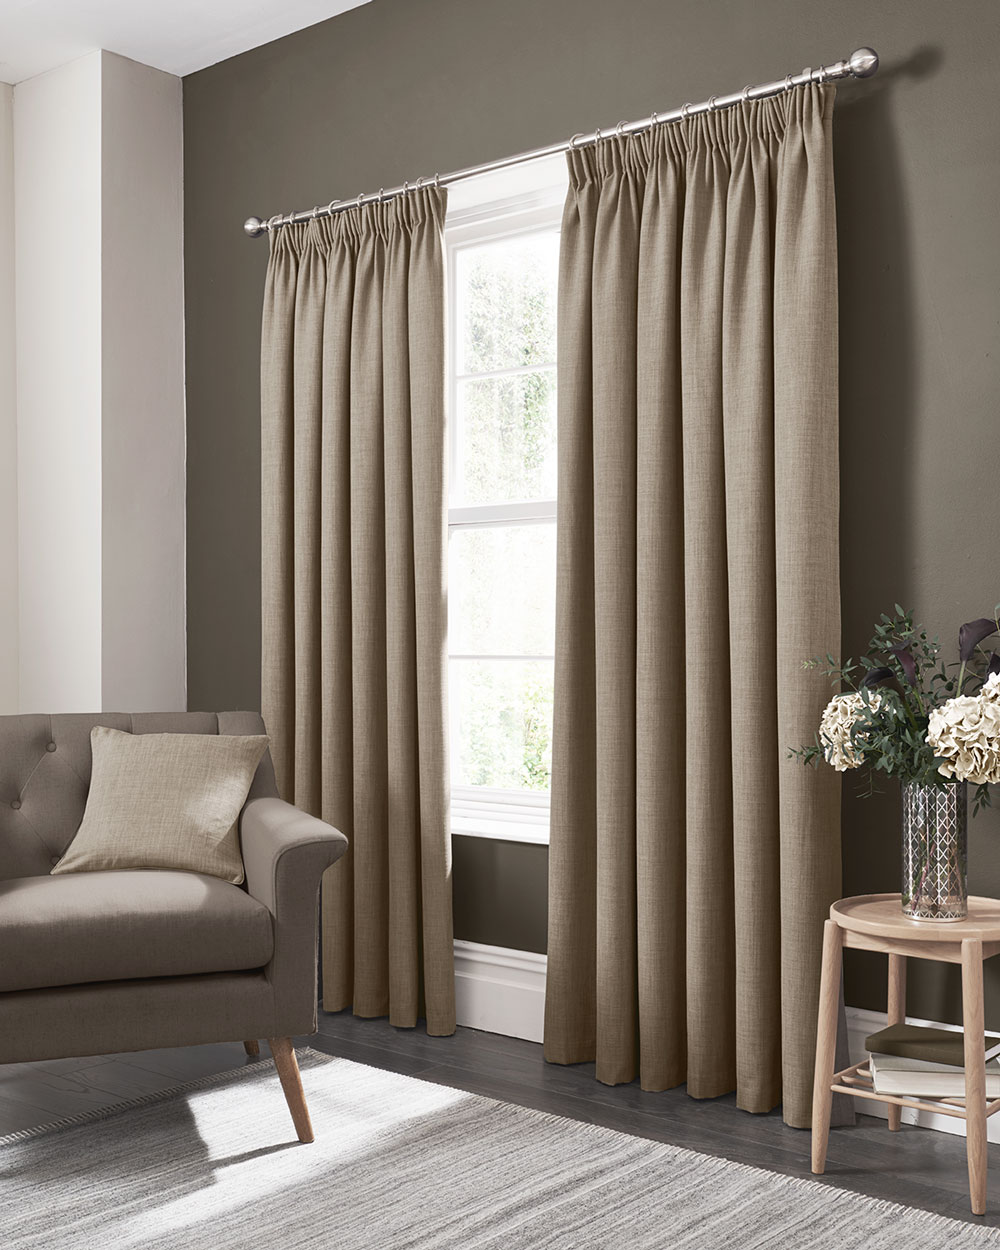 Studio G Elba Pencil Pleat Curtains  Linen Ready Made Curtains - Product code: M1105/03/46X7